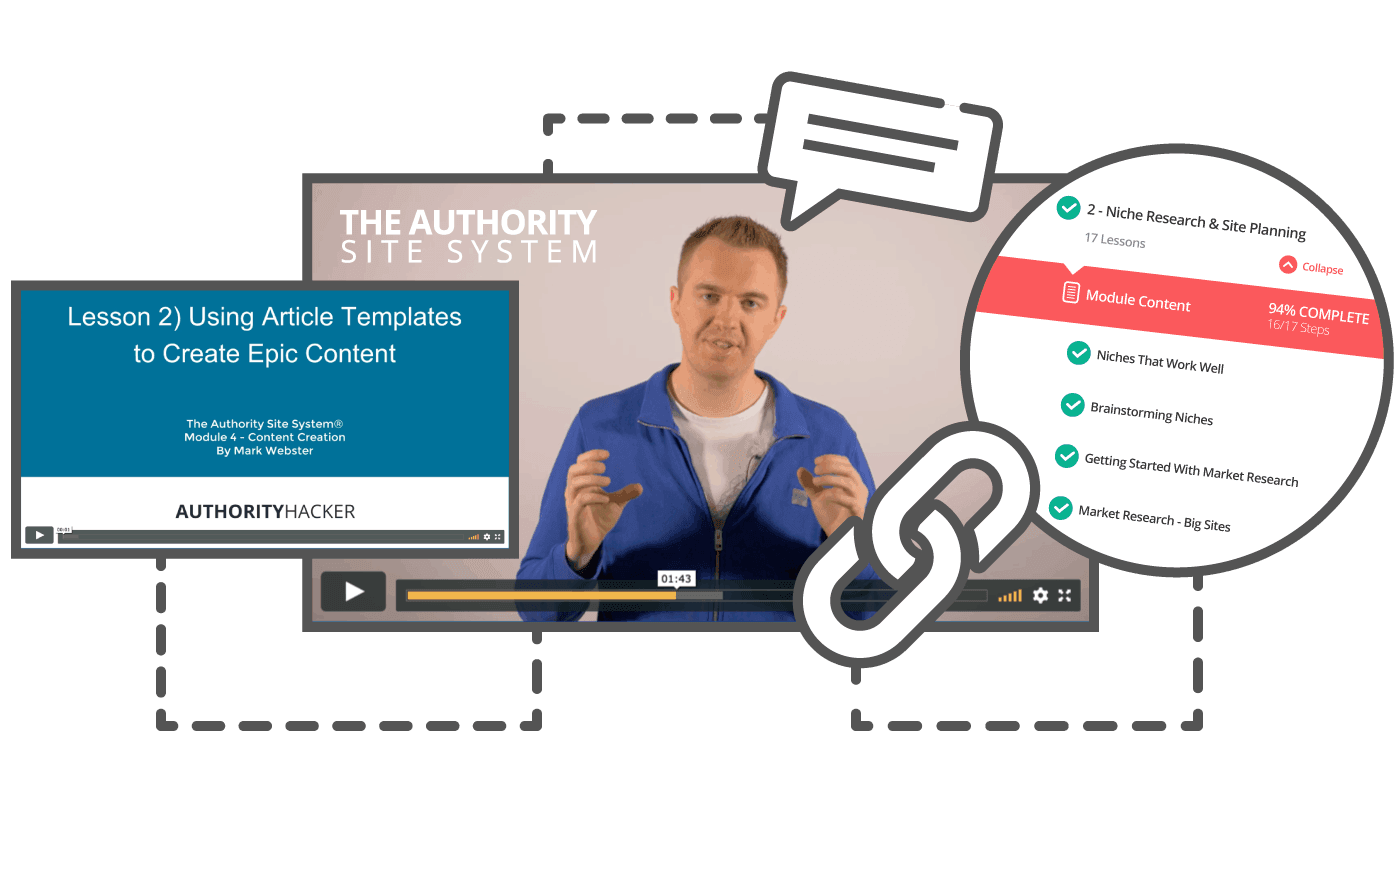 Authority Site System 3.0 Free Download - Gael Breton, Mark Webster